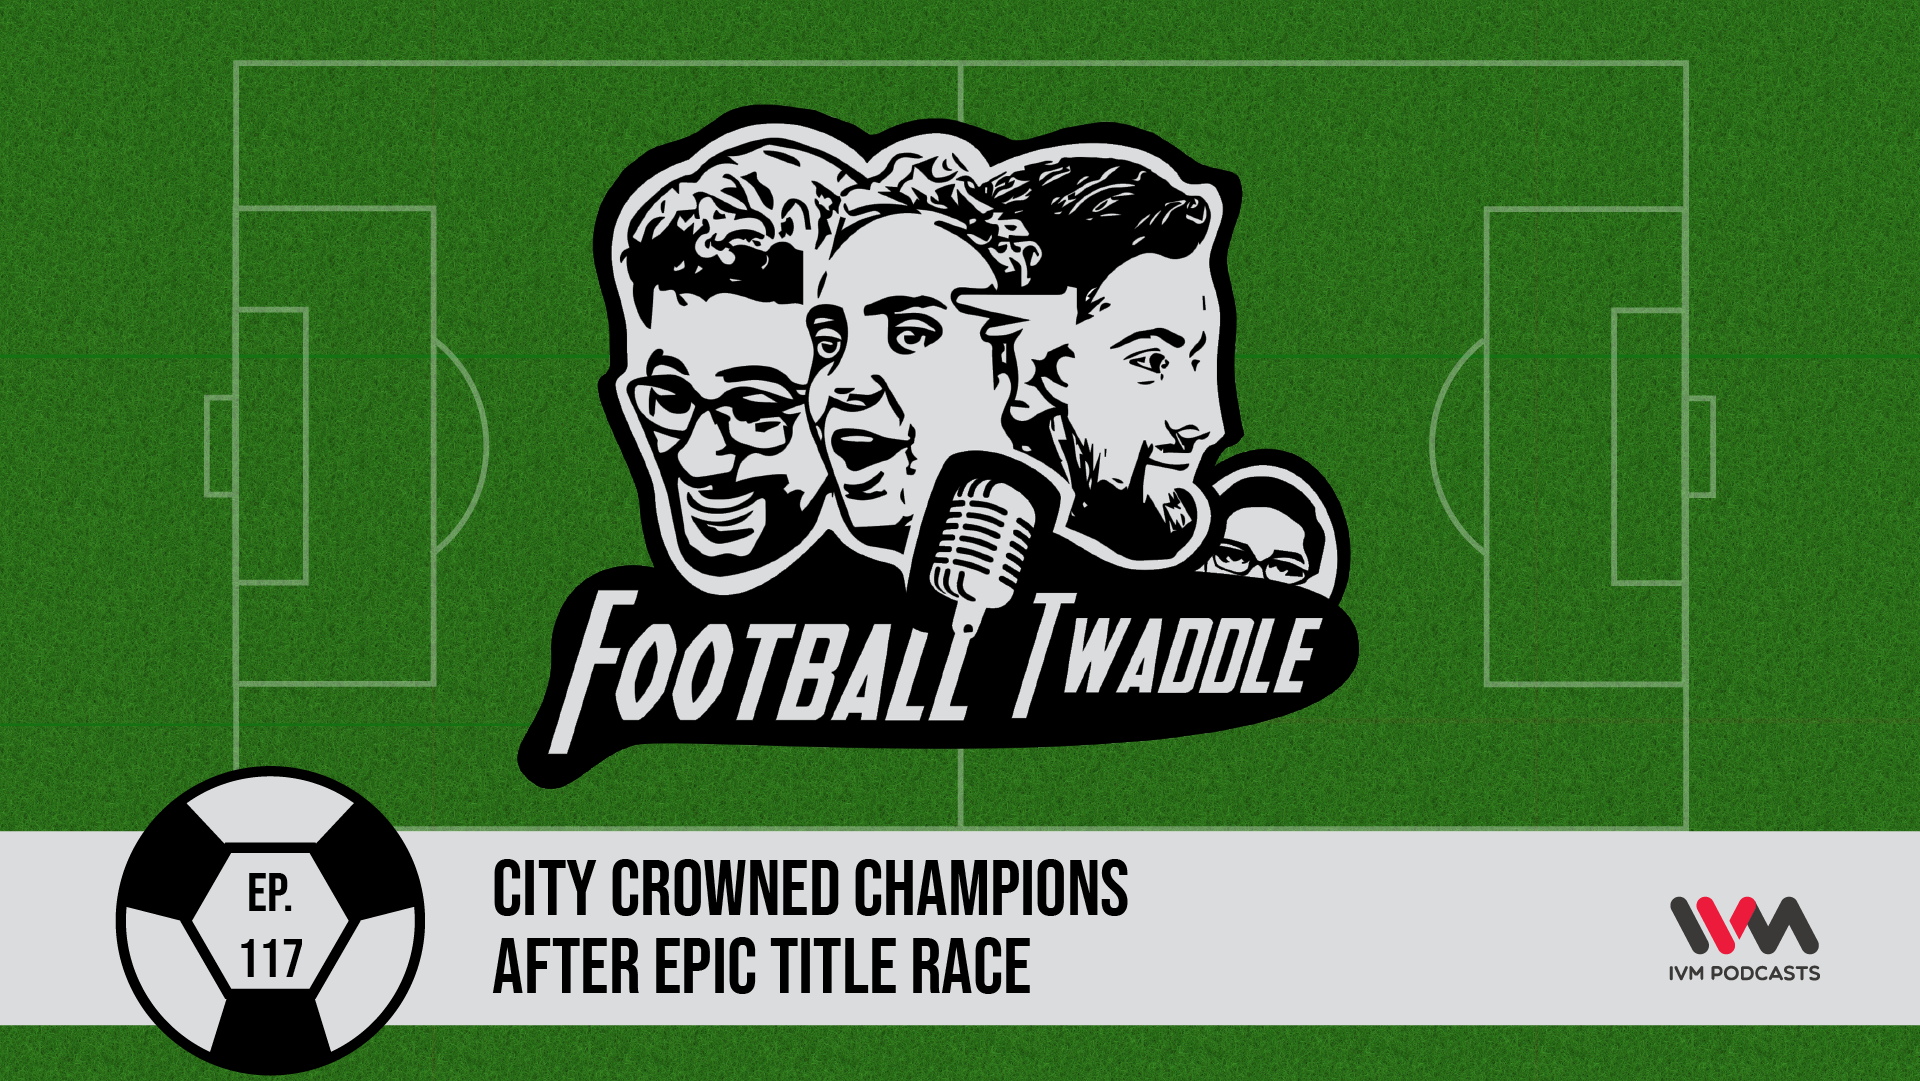 FootballTwaddleEpisode117.png